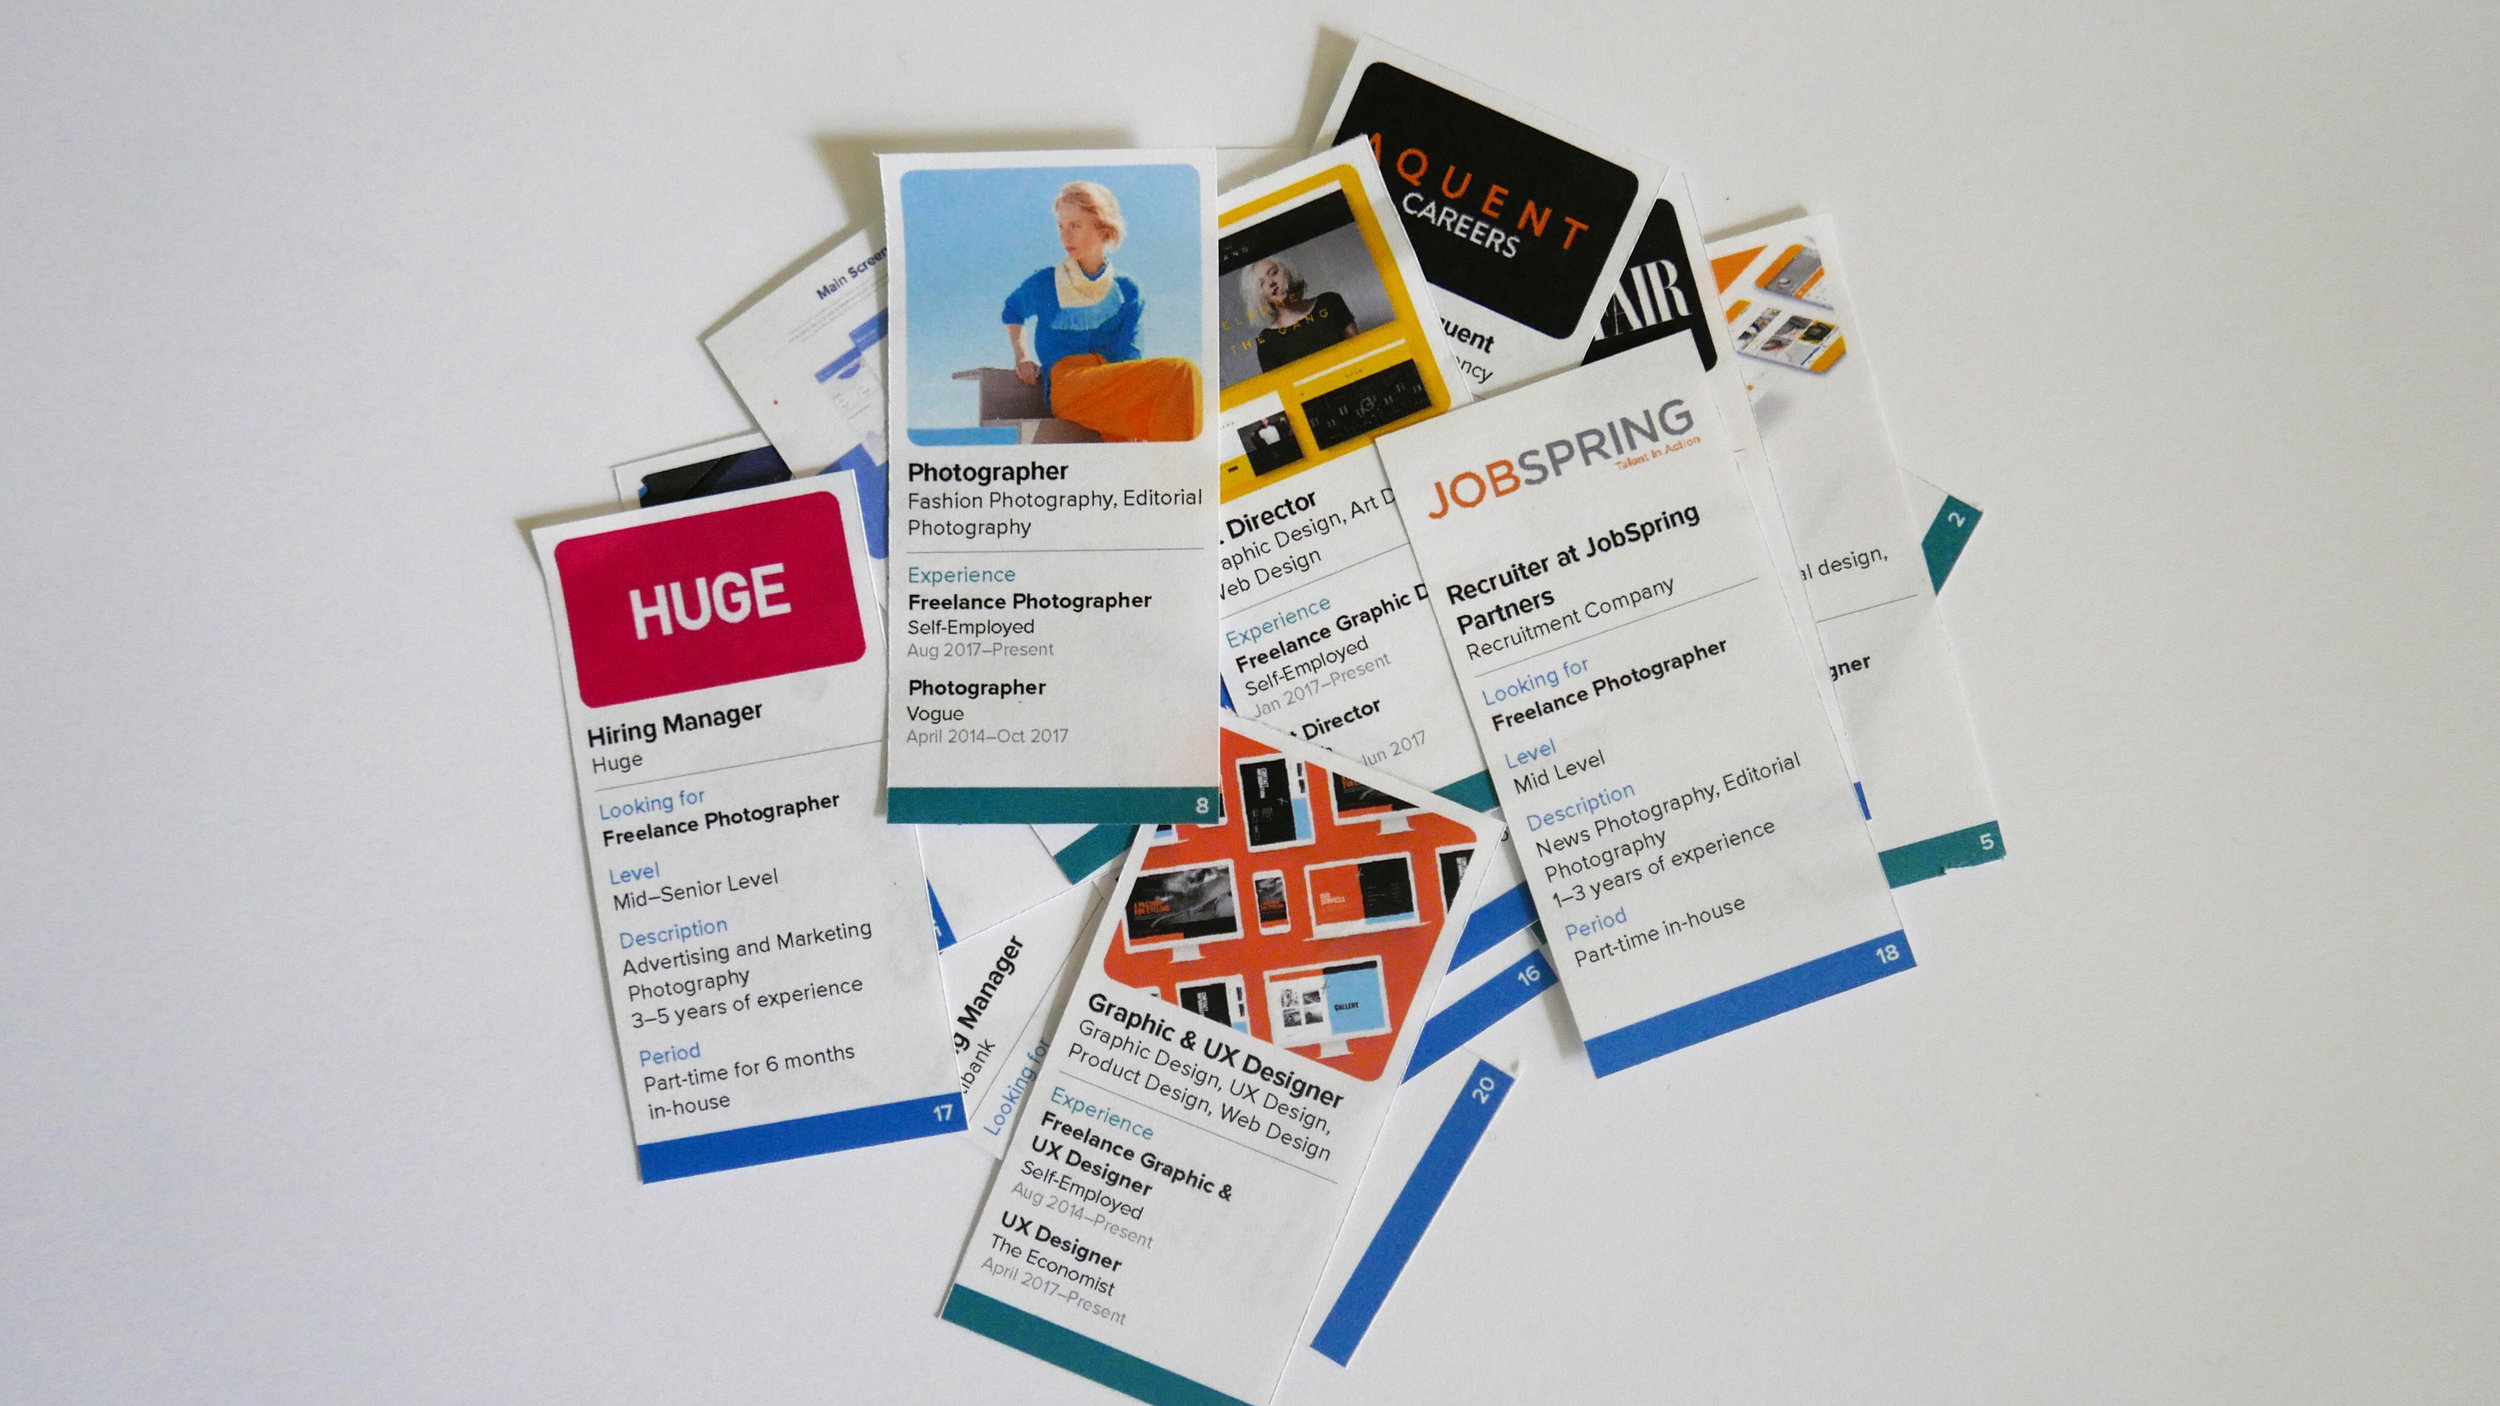 Card game to connect freelancers and recruiters to test our idea.